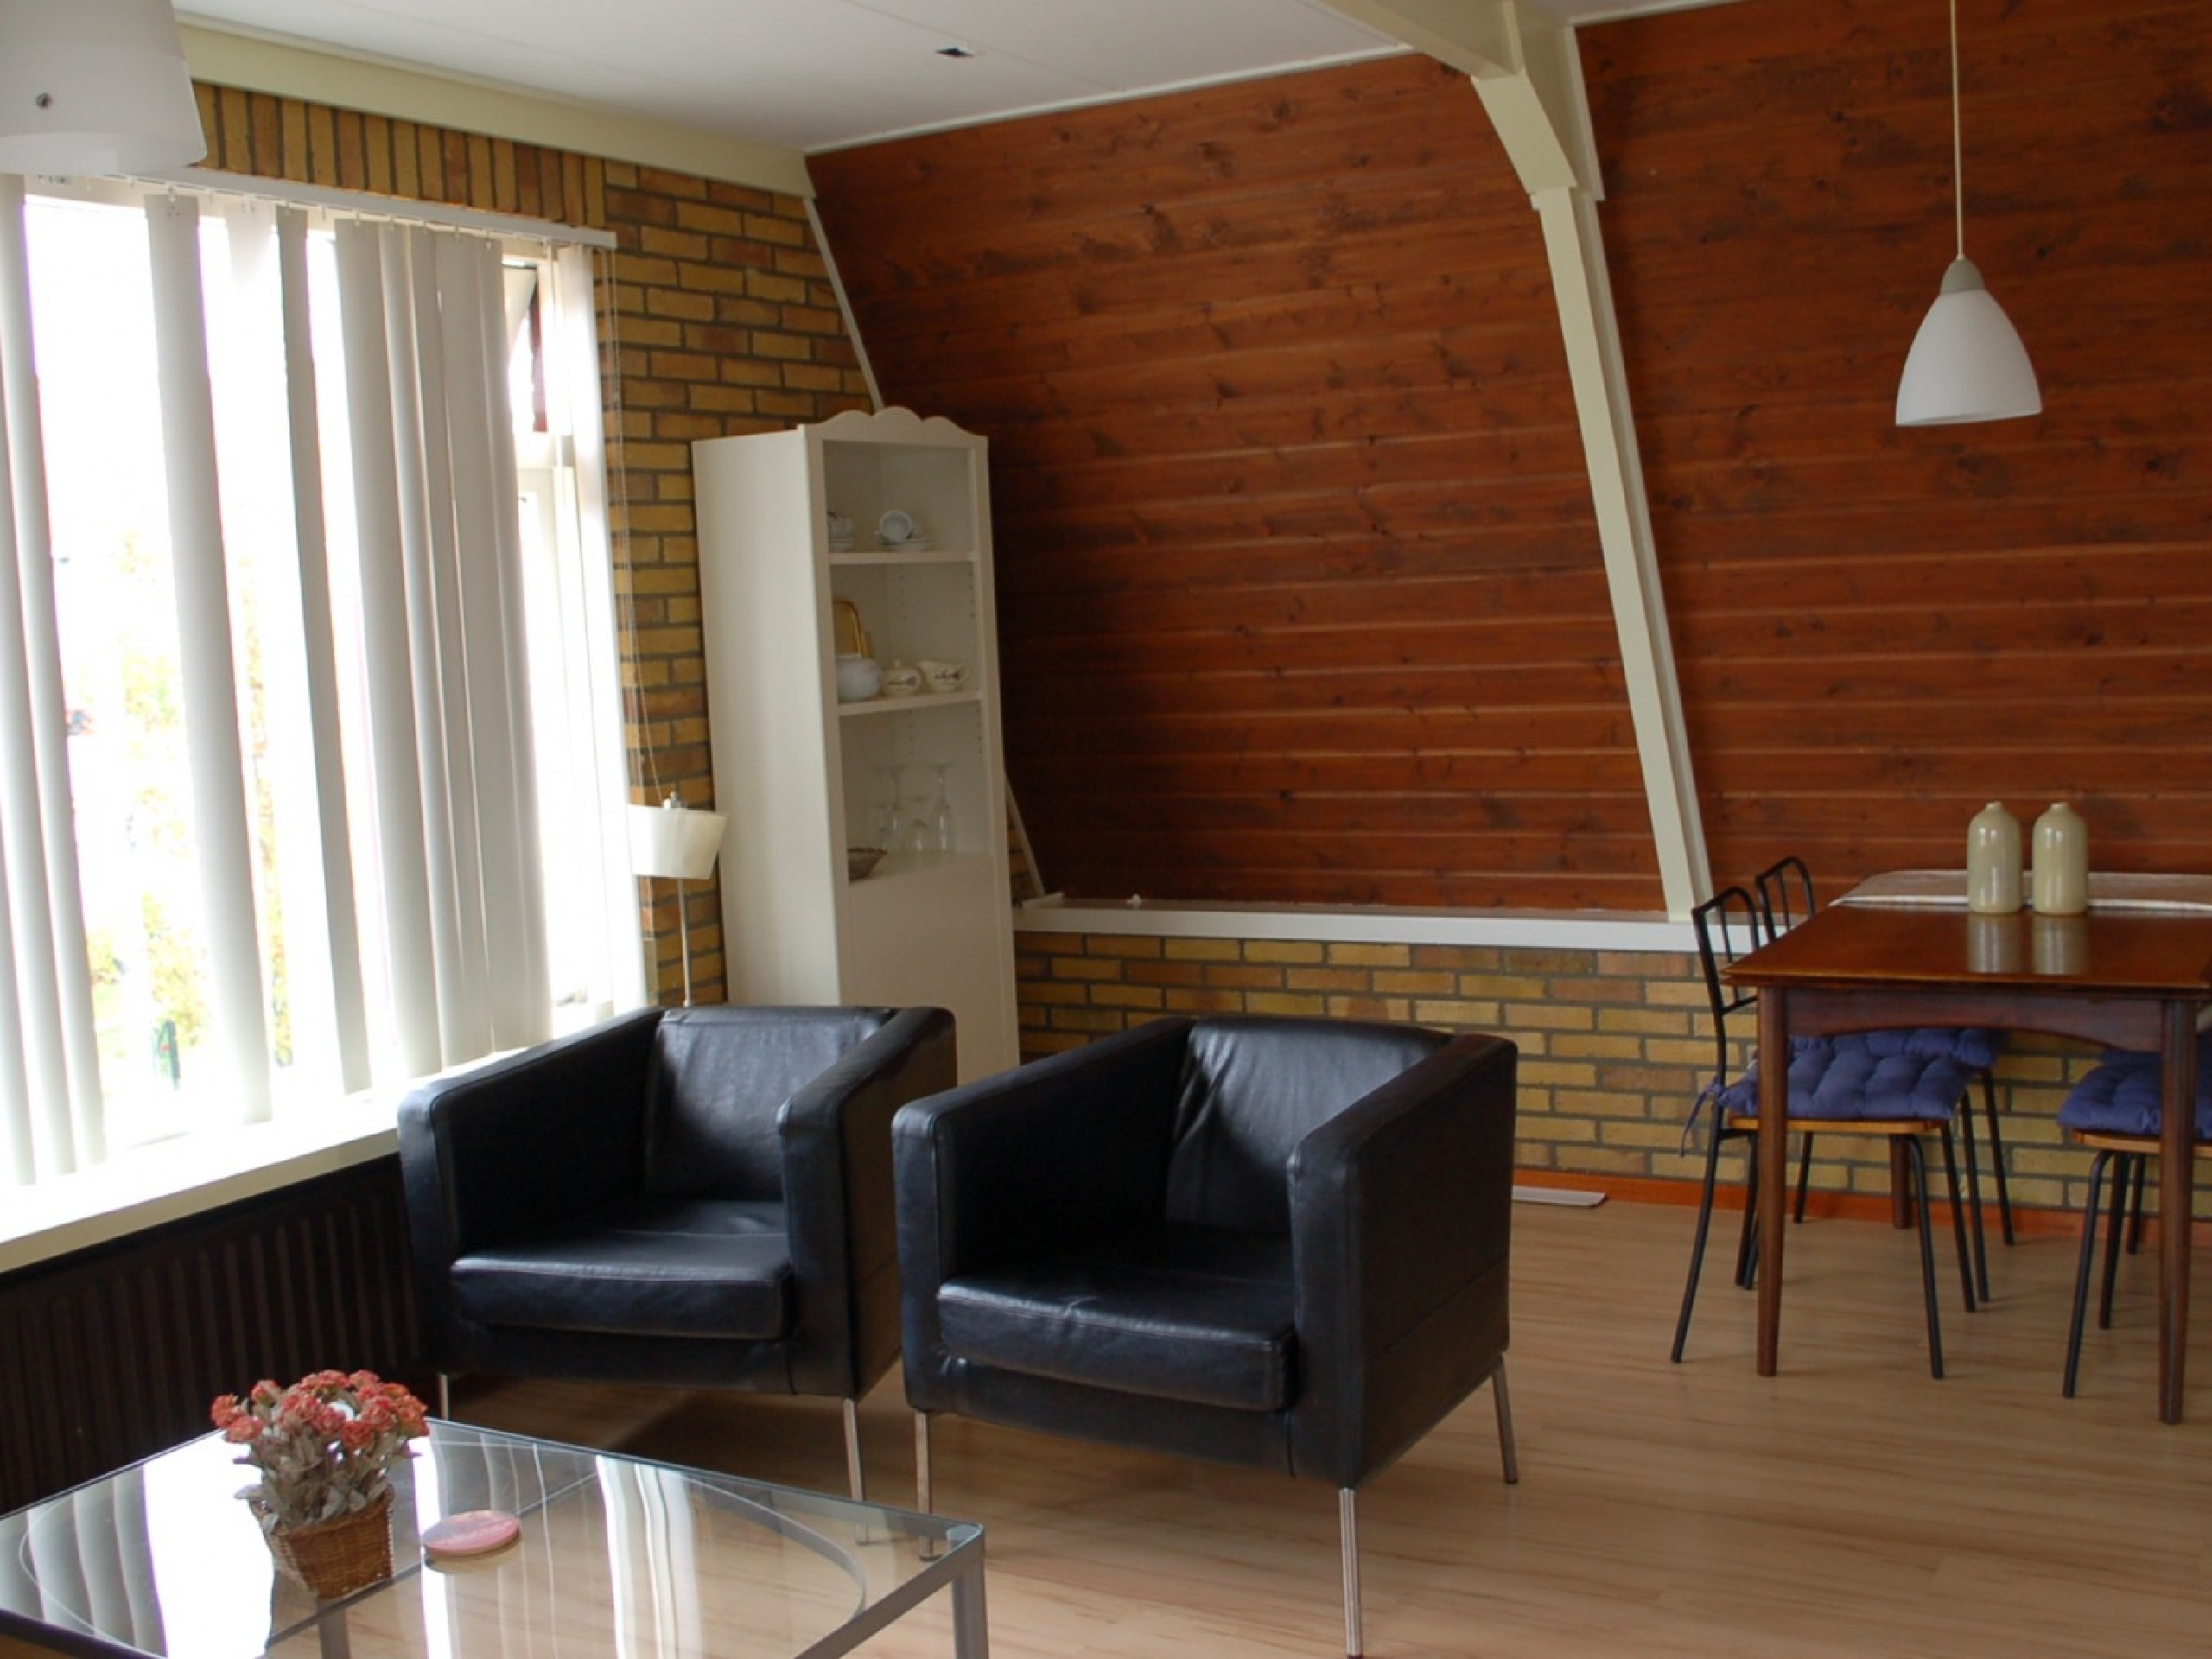 Apartment with roof terrace and nice view of the Roggesloot in De Cocksdorp